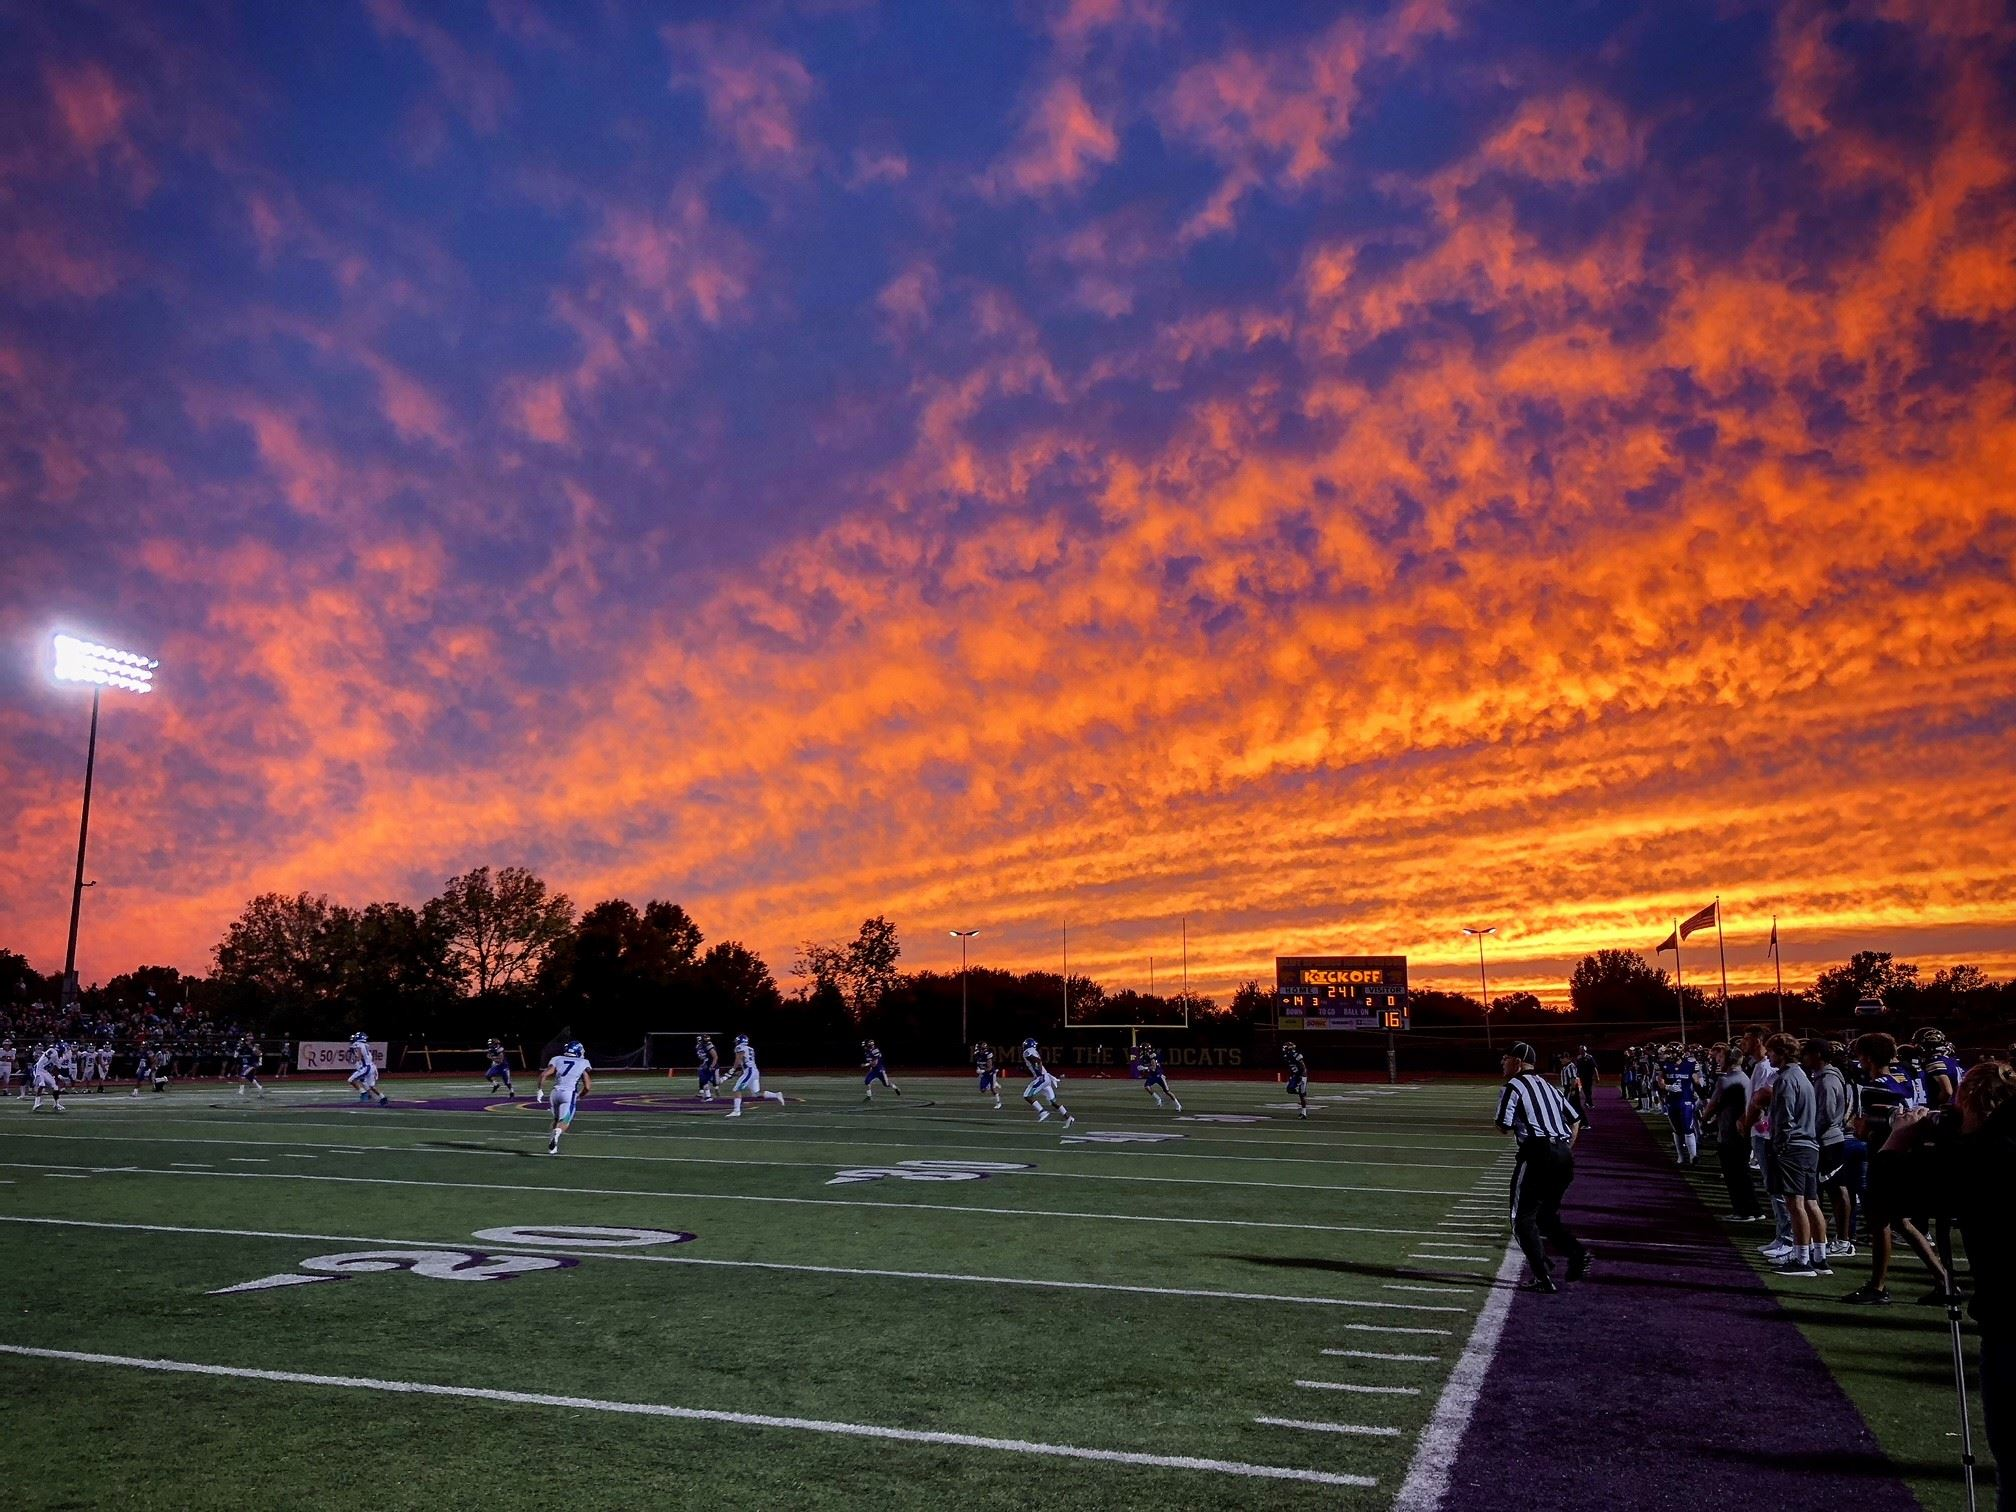 My Blue Springs Catagory Winner - Football sunset